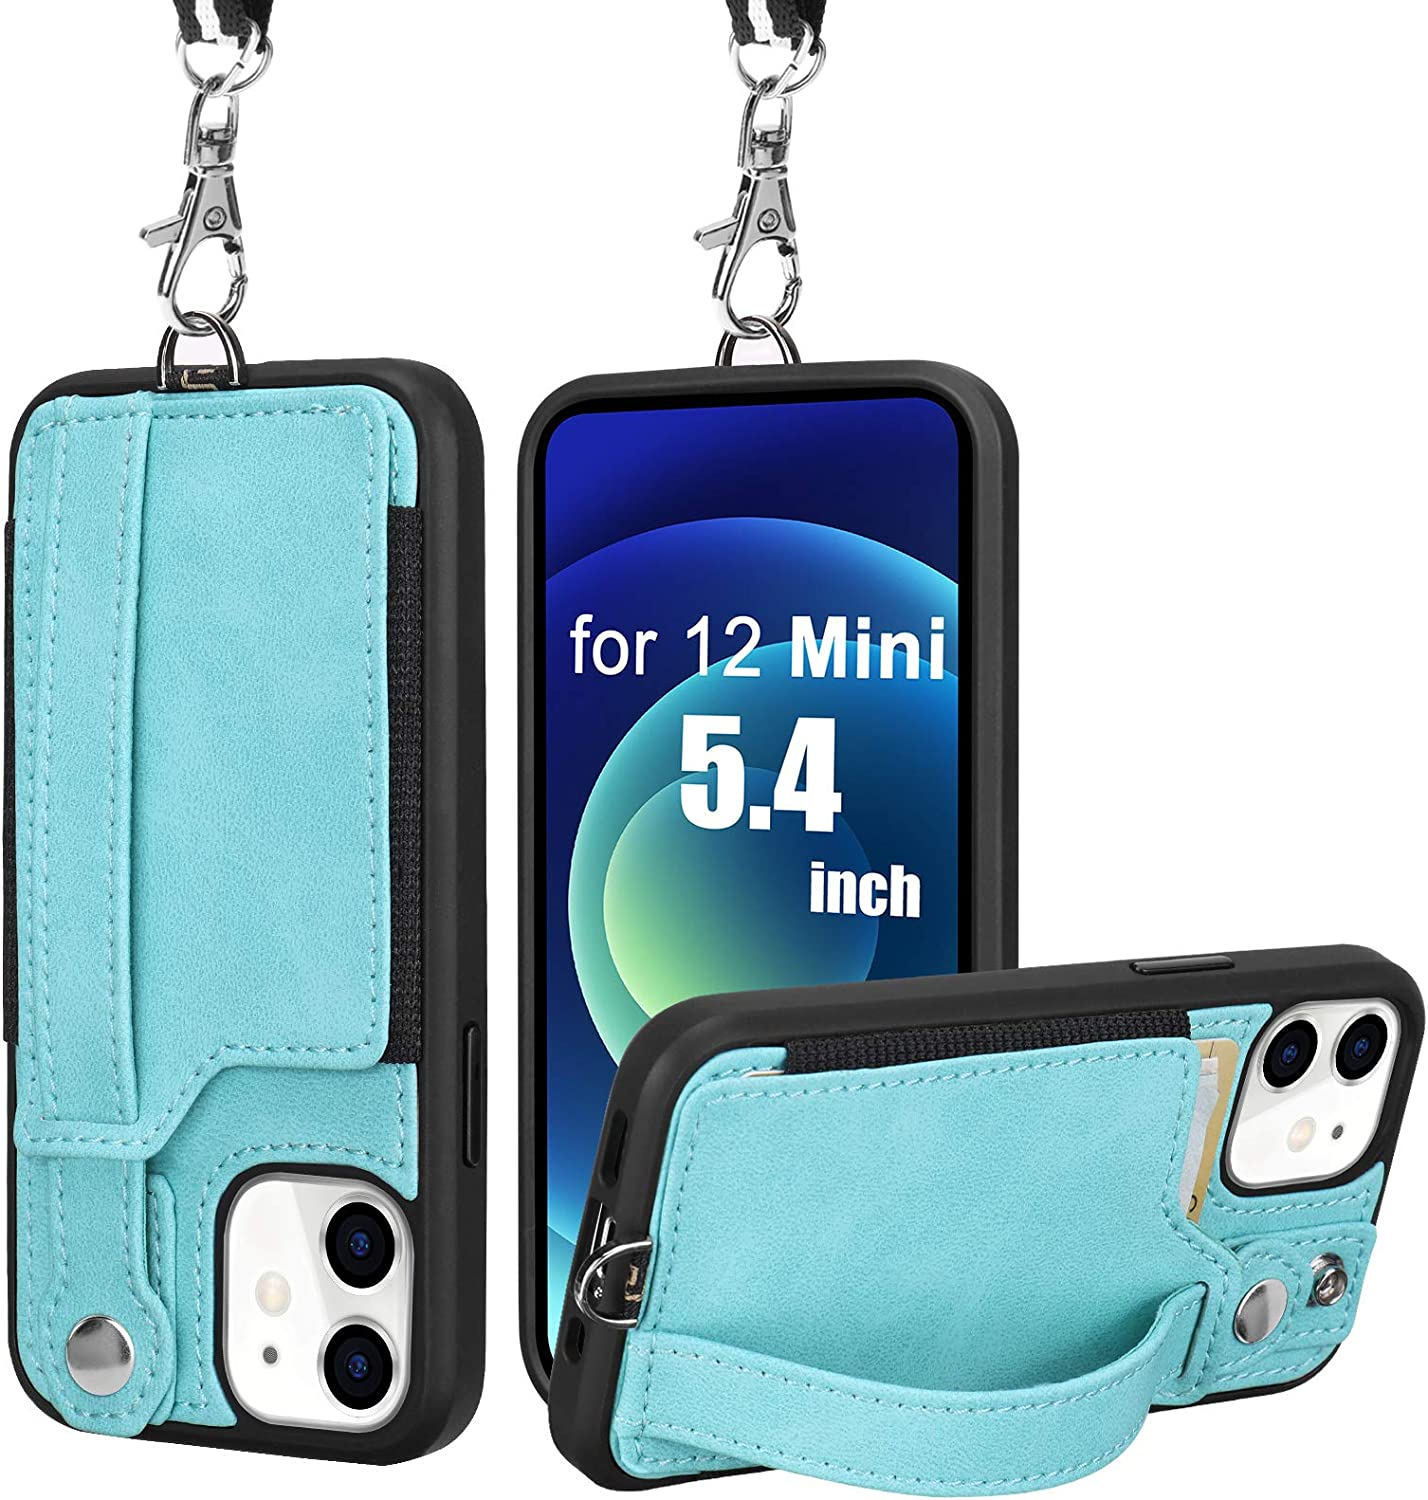 TOOVREN Compatible with iPhone 12 Mini Case, Phone Case Wallet Protective Case with Leather PU Stand Card Holder Adjustable Detachable Strap Lanyard Card Case for 12 Mini 5.4 Inch 2020 Green